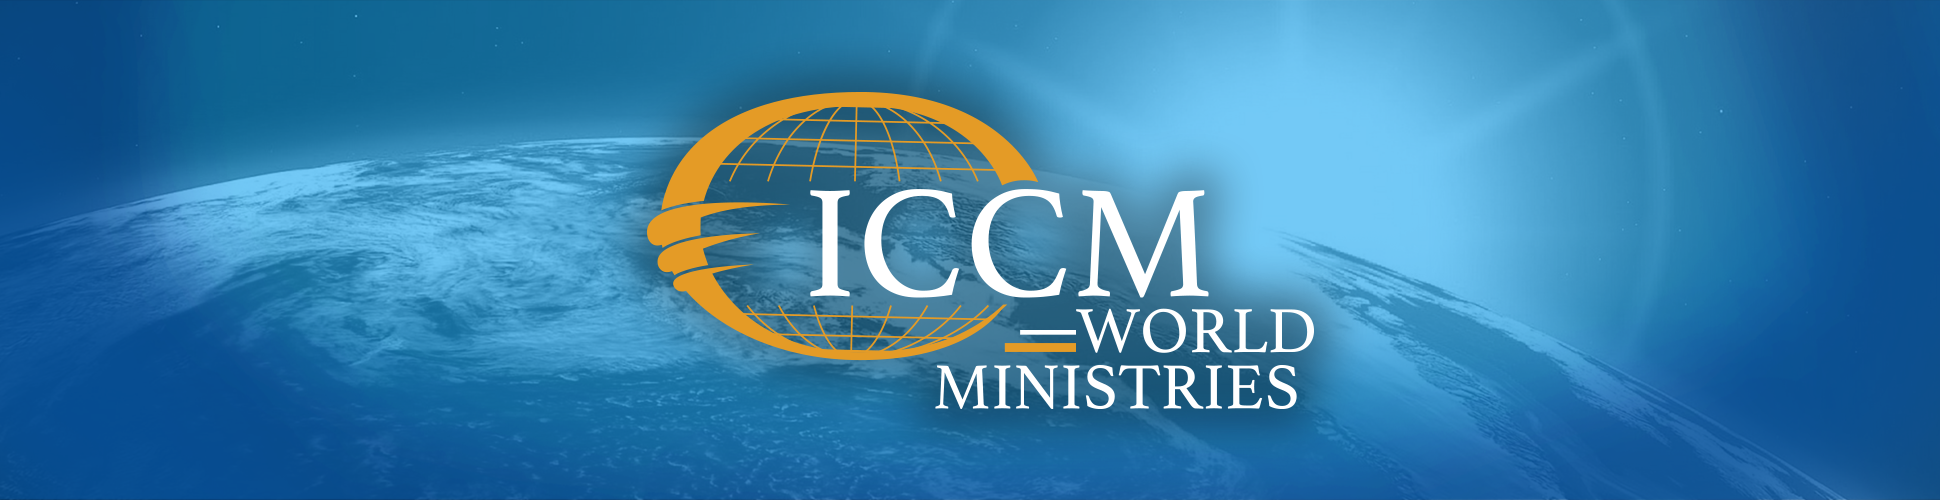 ICCM World Ministries